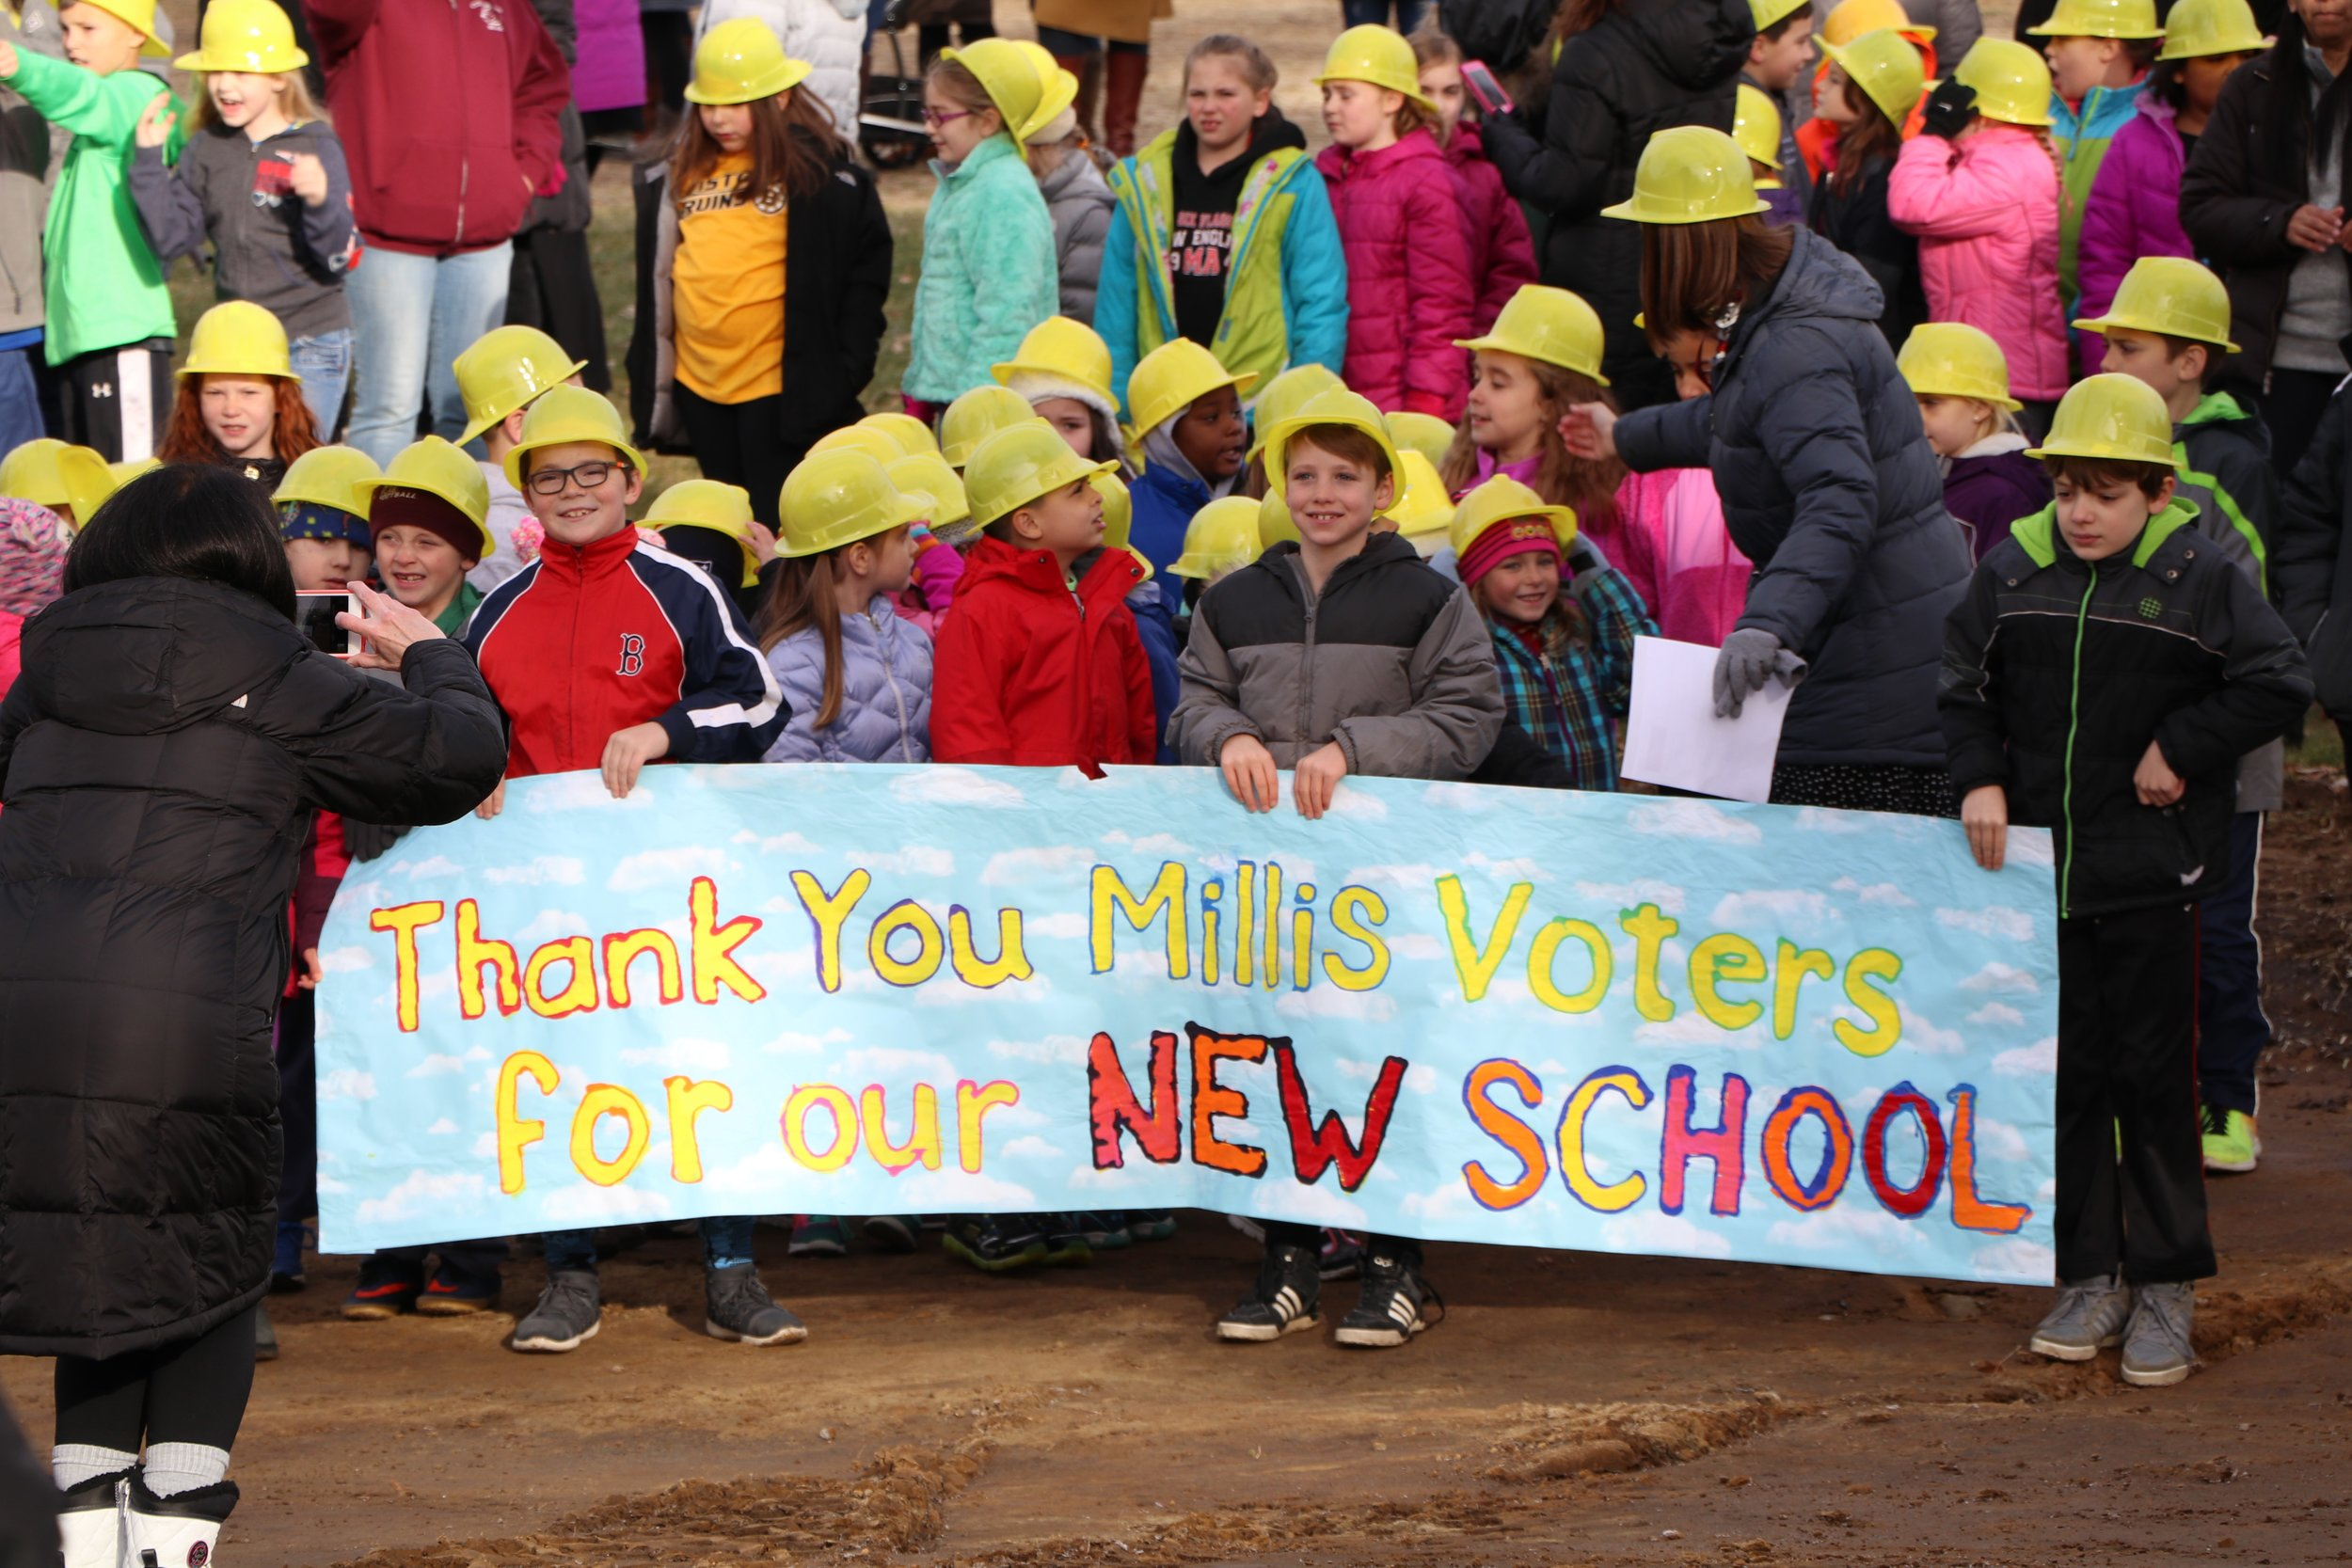 Millis Elementary students pose for groundbreaking photo